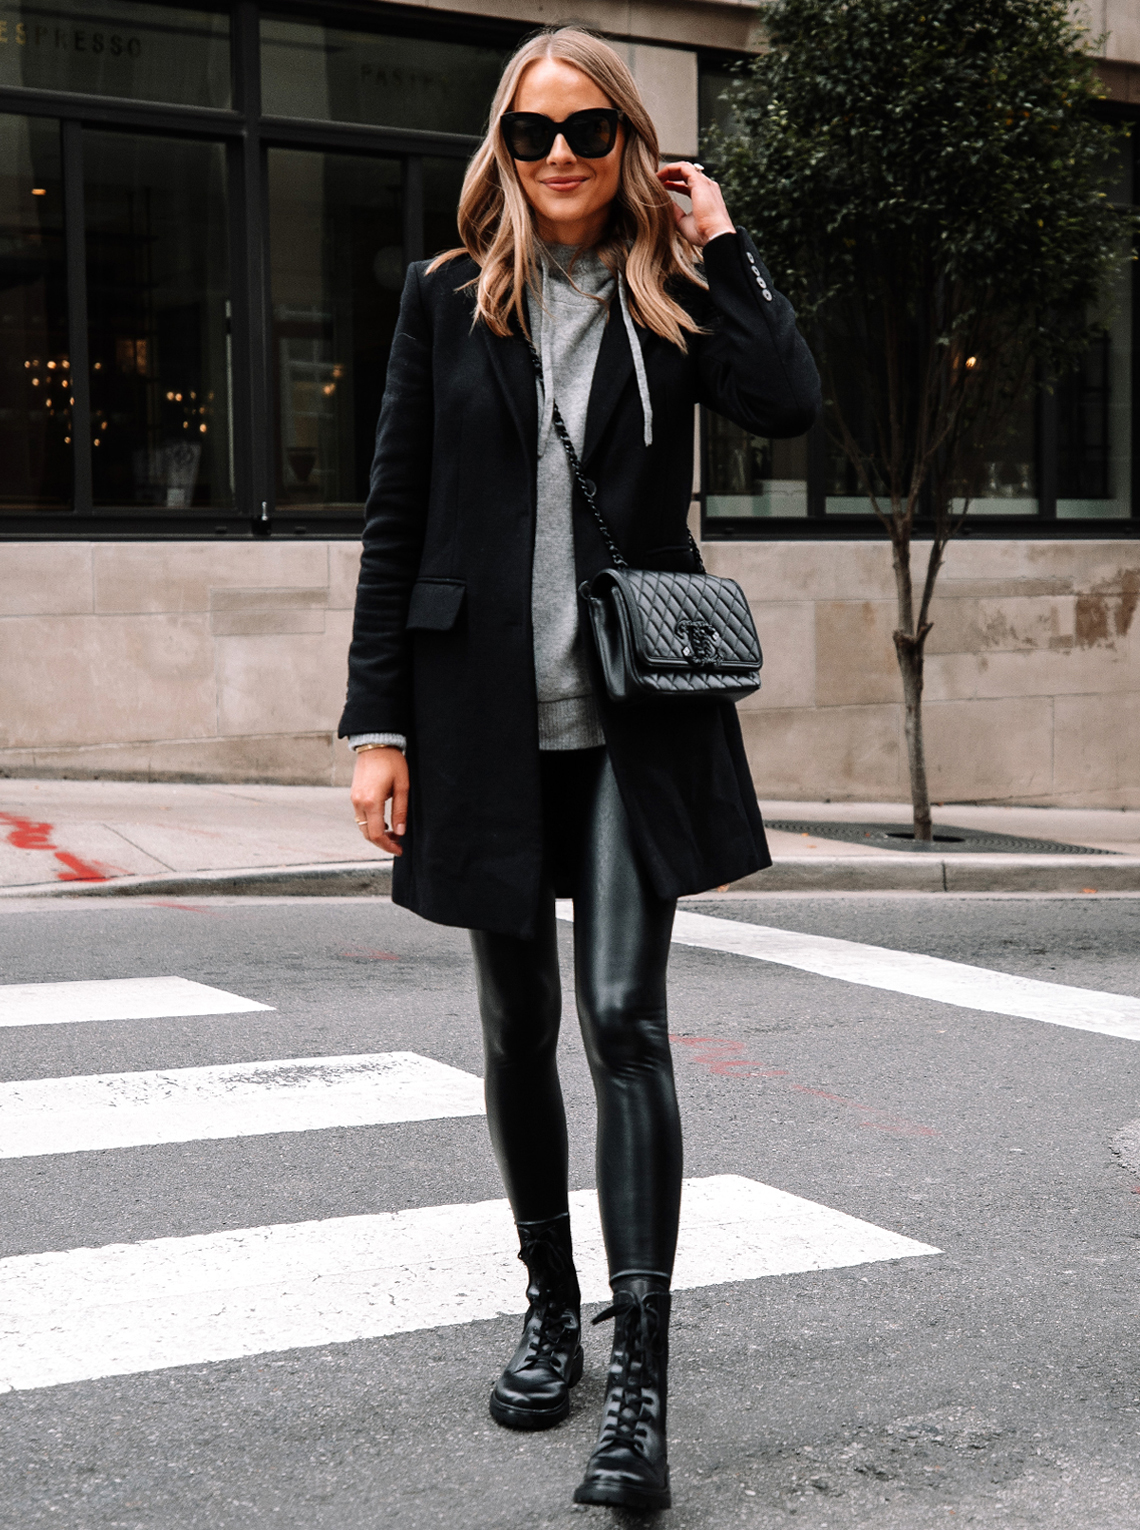 Fashion-Jackson-Wearing-Black-Wool-Coat-Grey-Sweater-Commando-Black-Faux-Leather-Leggings-Sam-Edelman-Black-Combat-Boots-Street-Style-Outfit-1